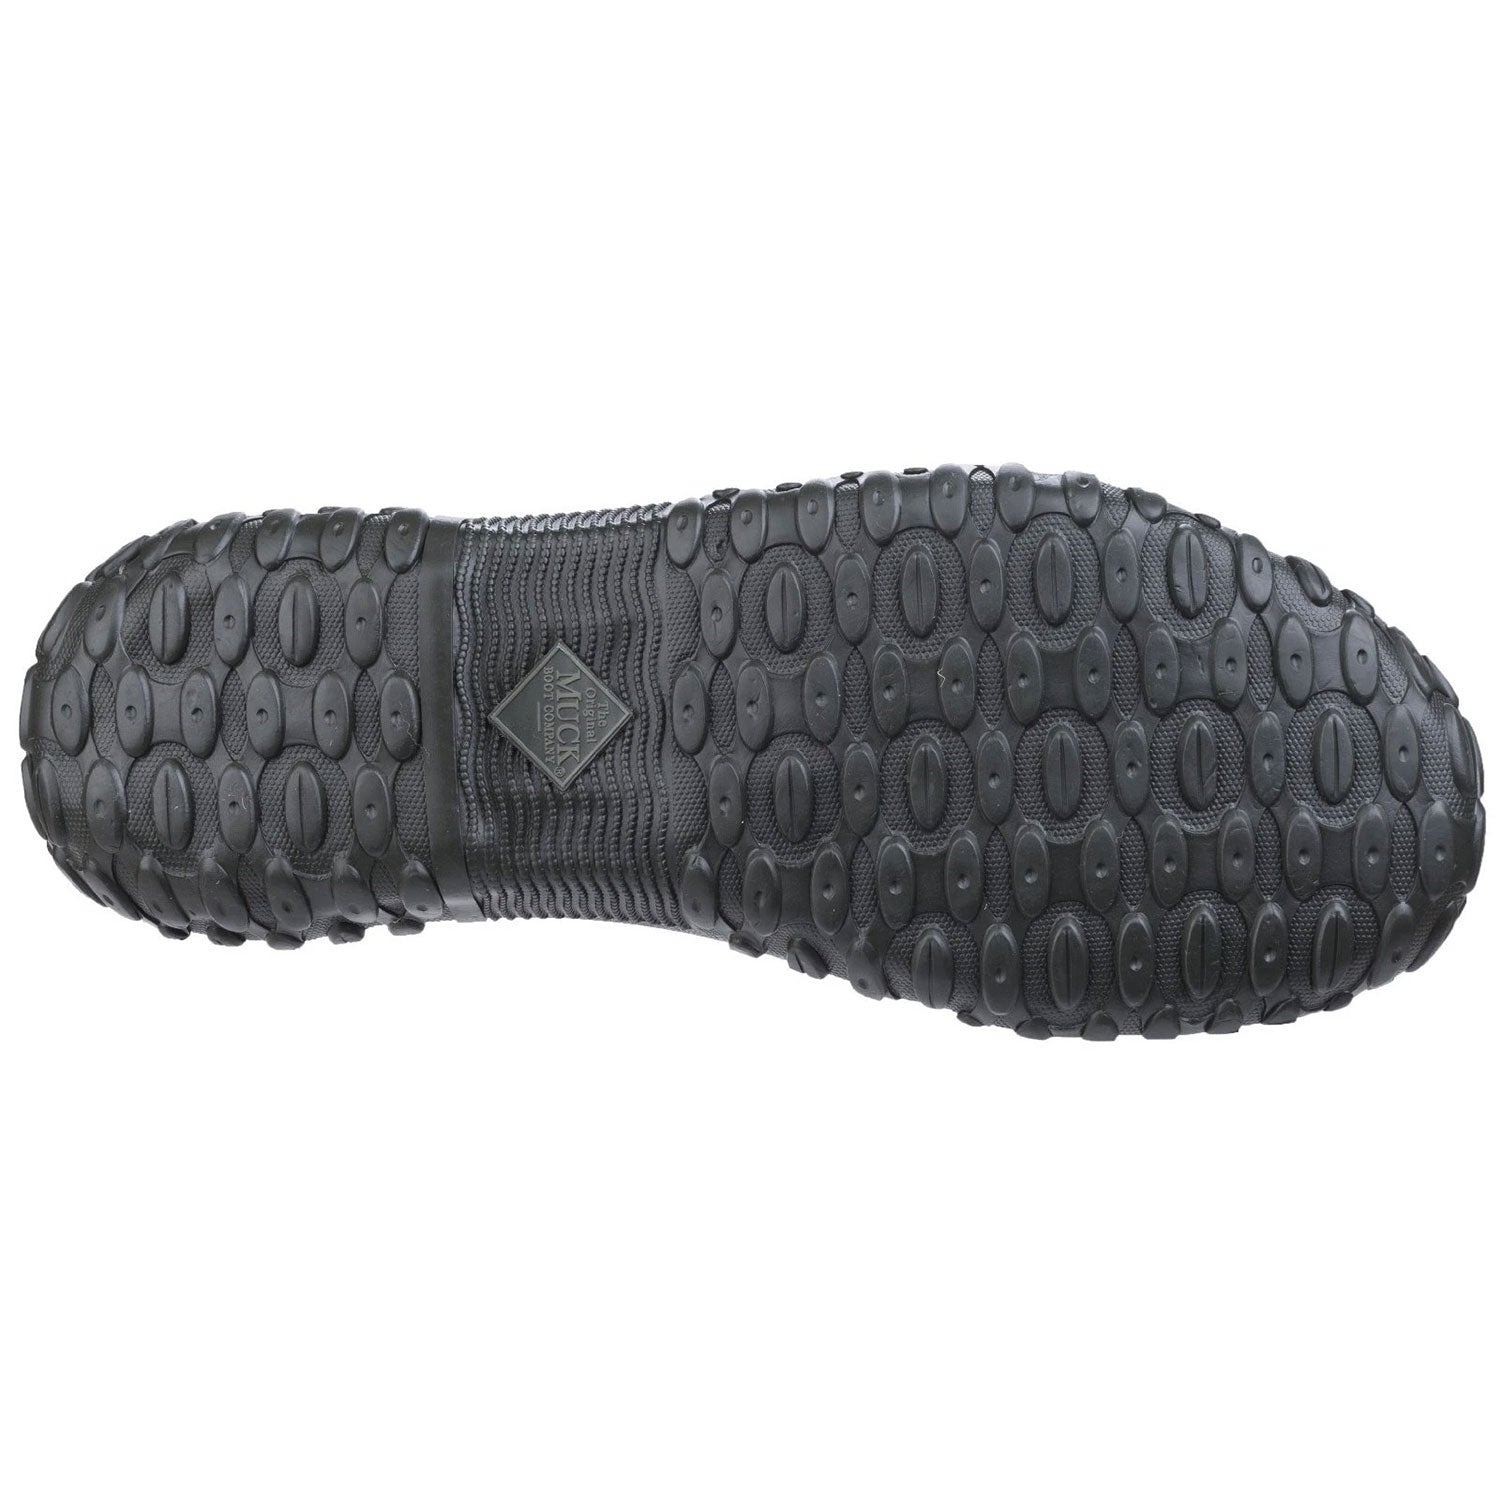 Green Traction grip  non clogging sole